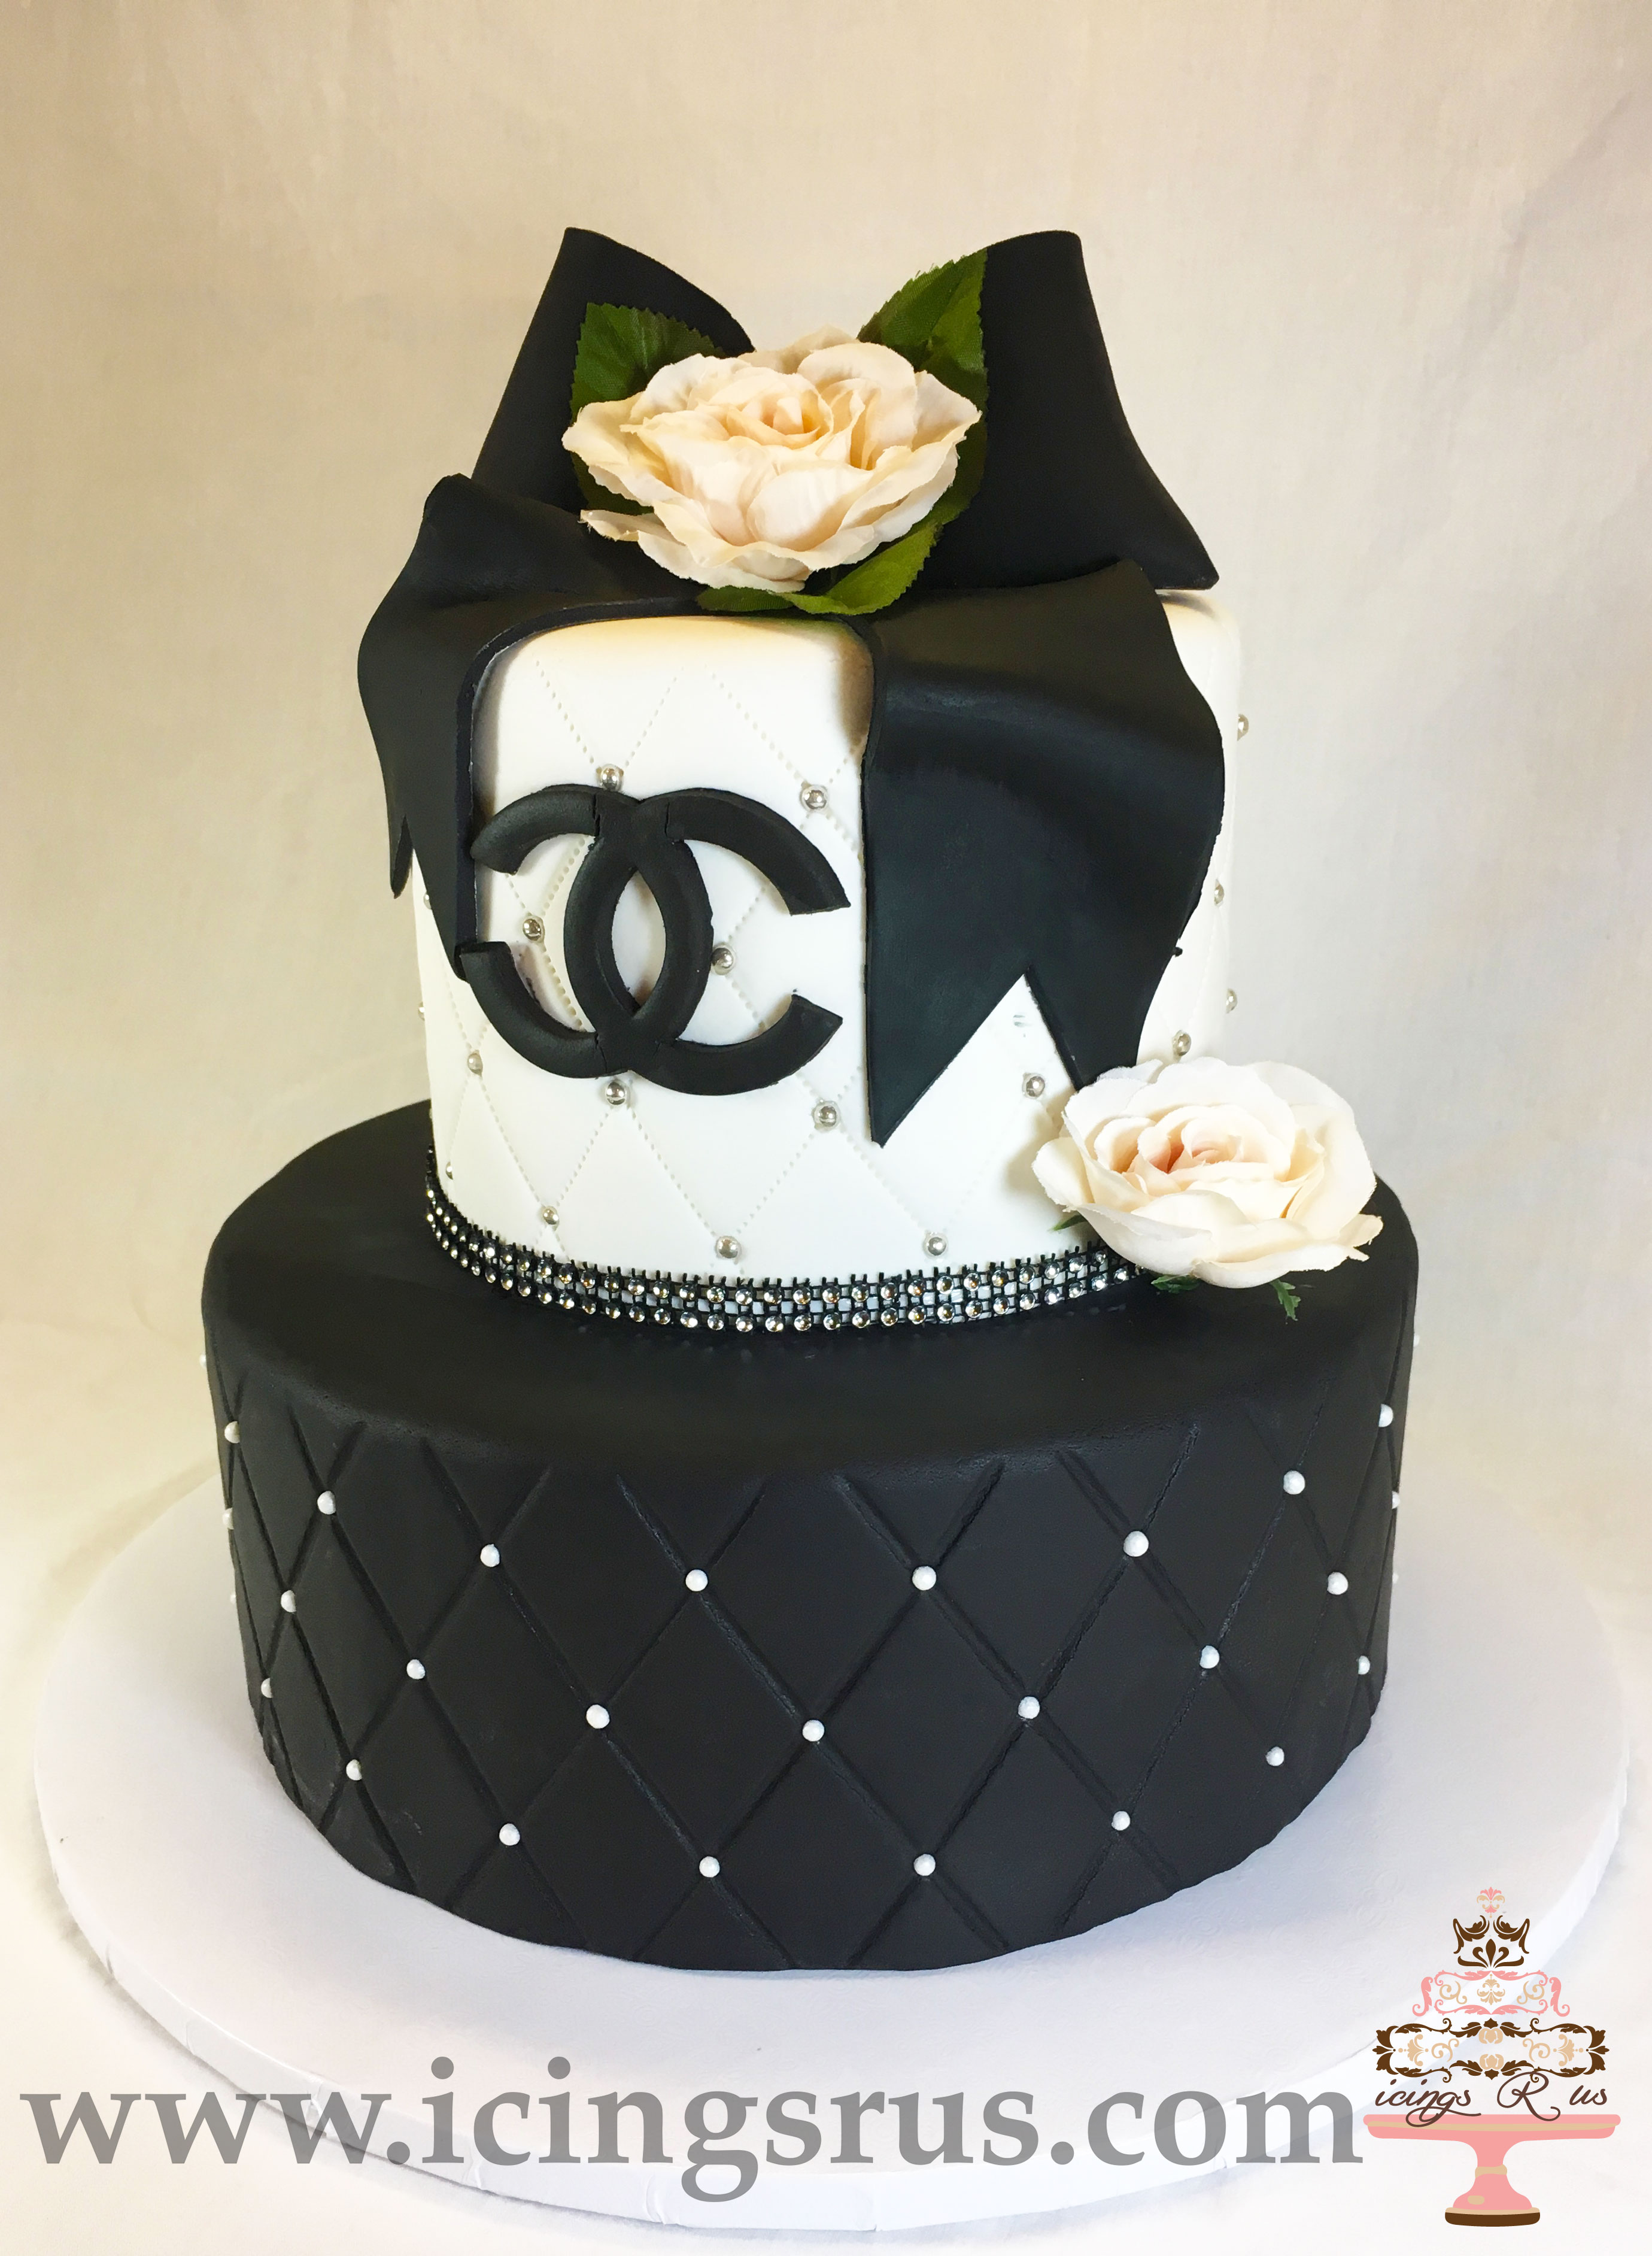 2 Teir Channel With Rose Cake Icings R Us